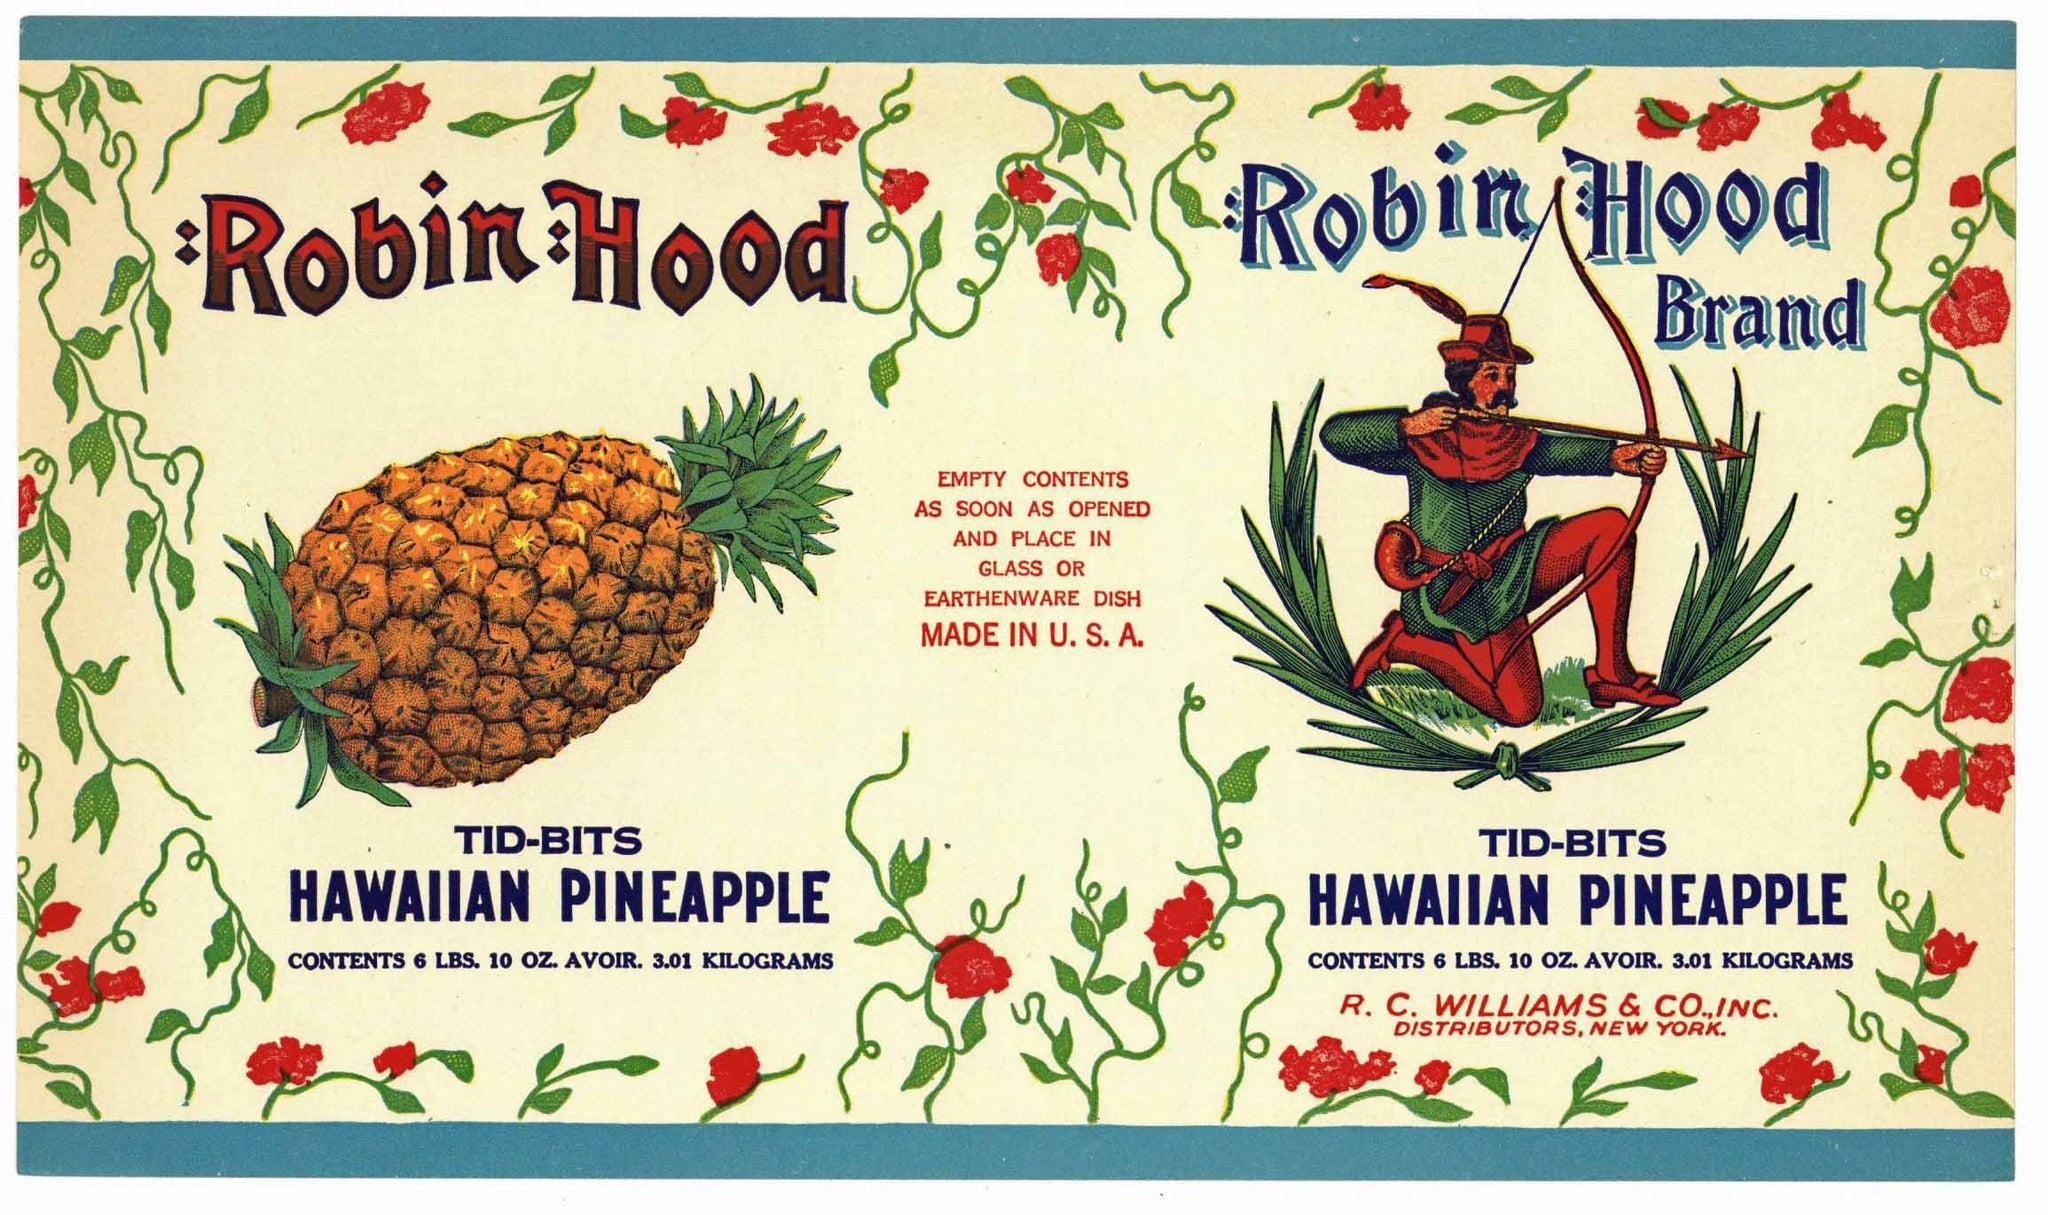 Robin Hood Brand Vintage Pineapple Can Label